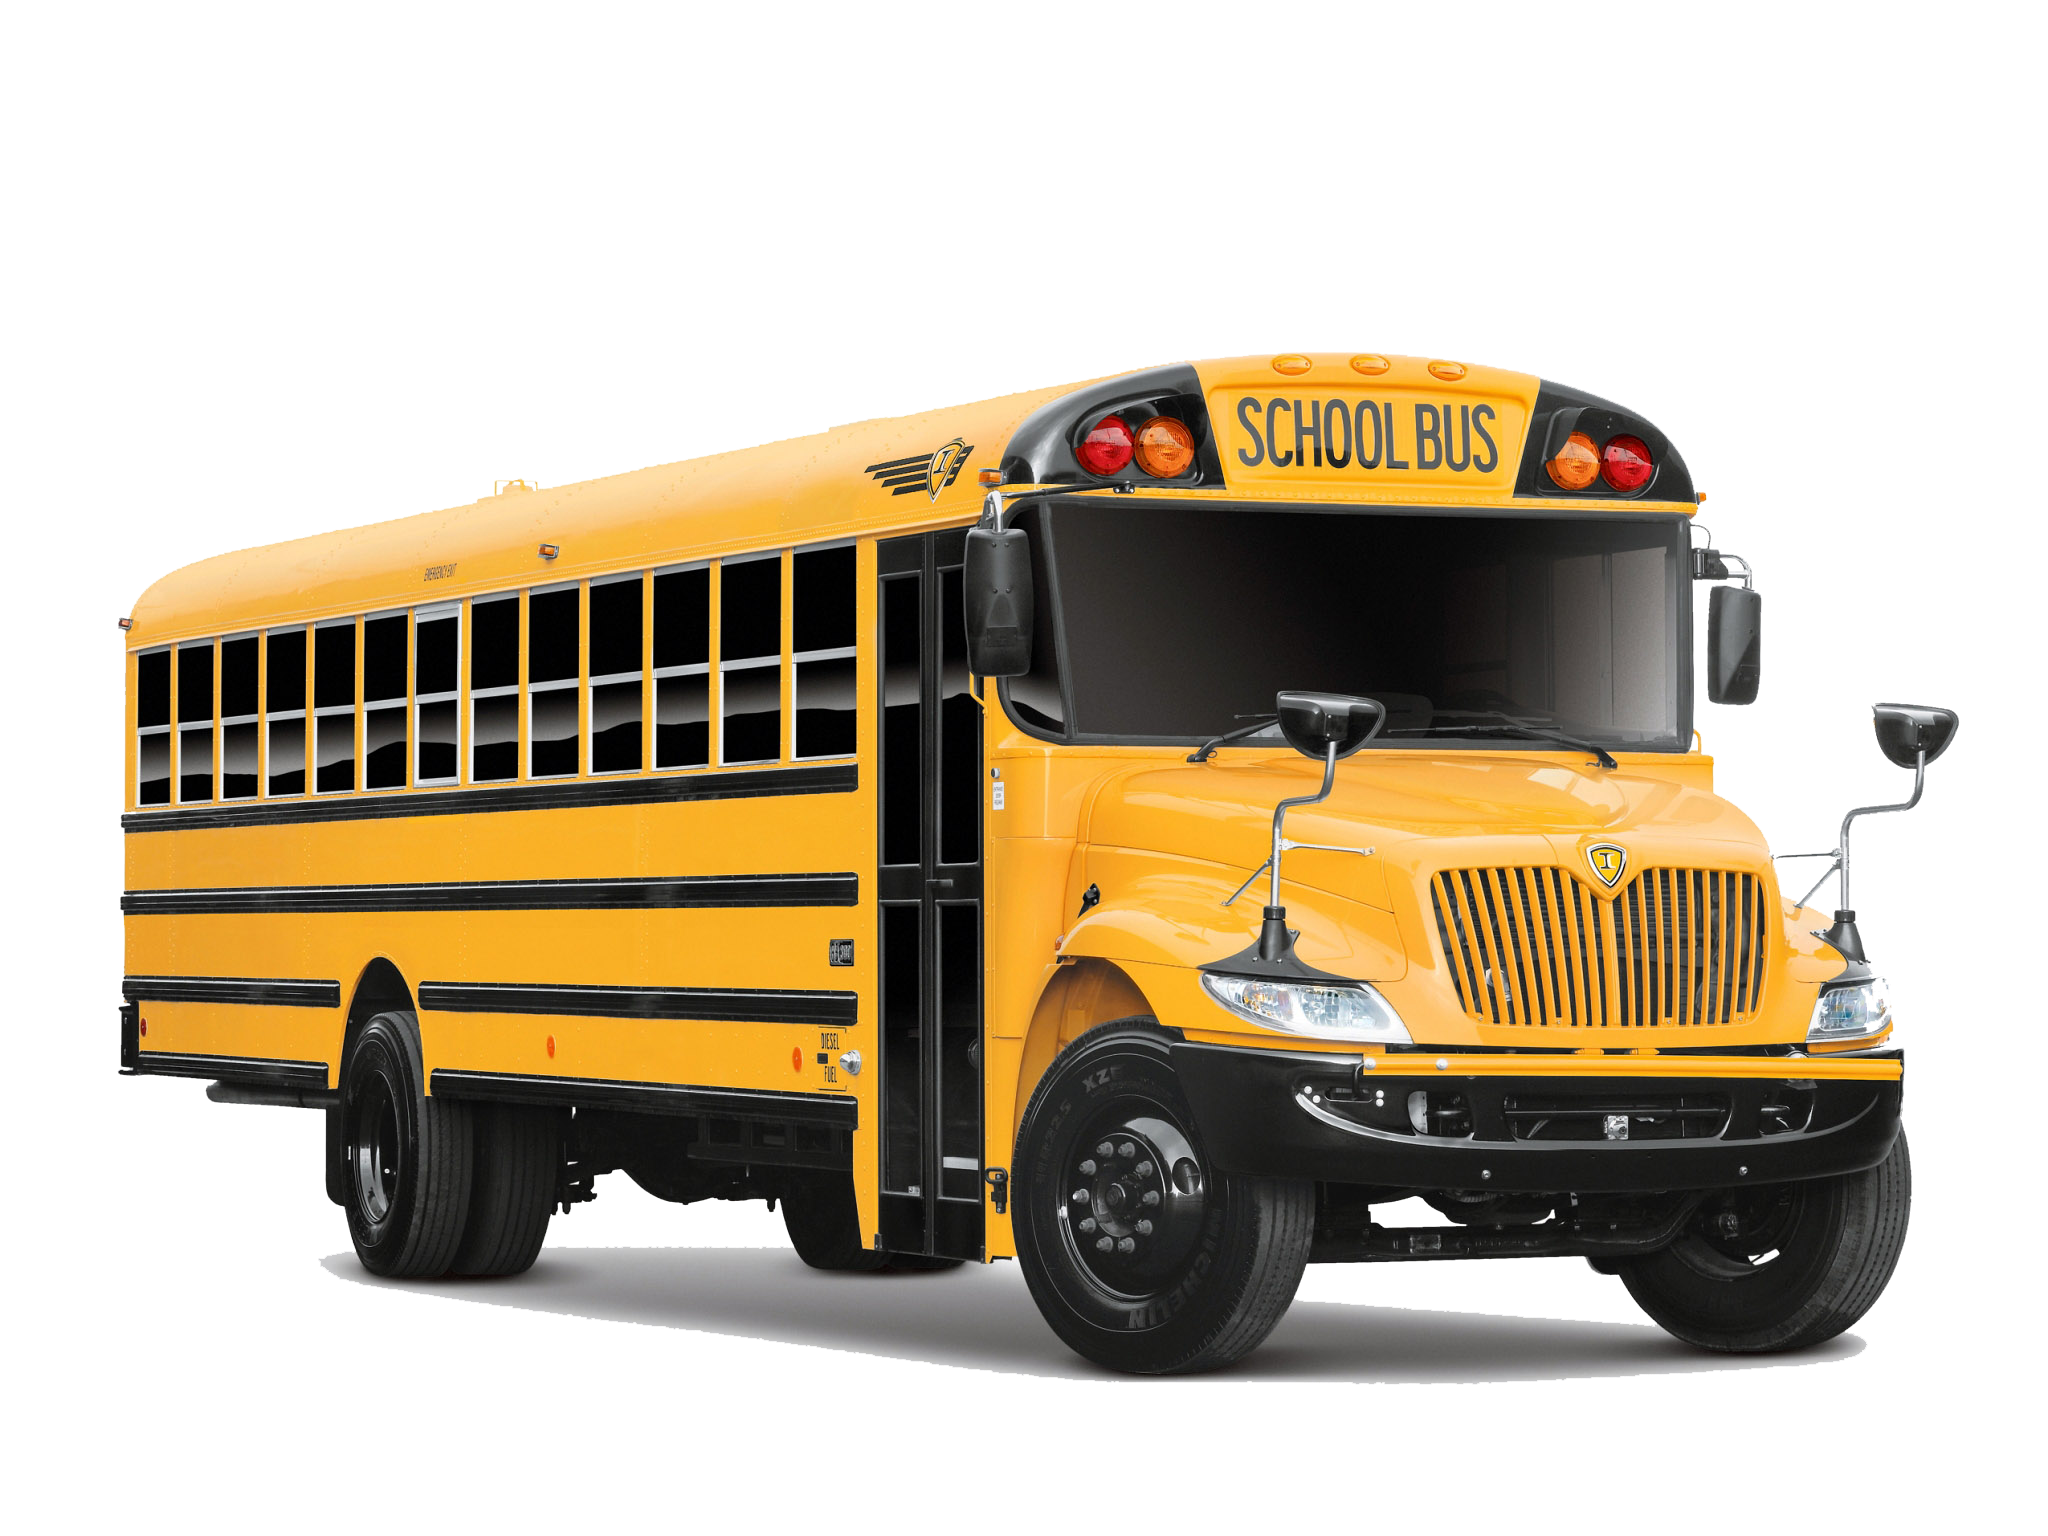 yellow bus png image purepng free transparent cc0 png image library